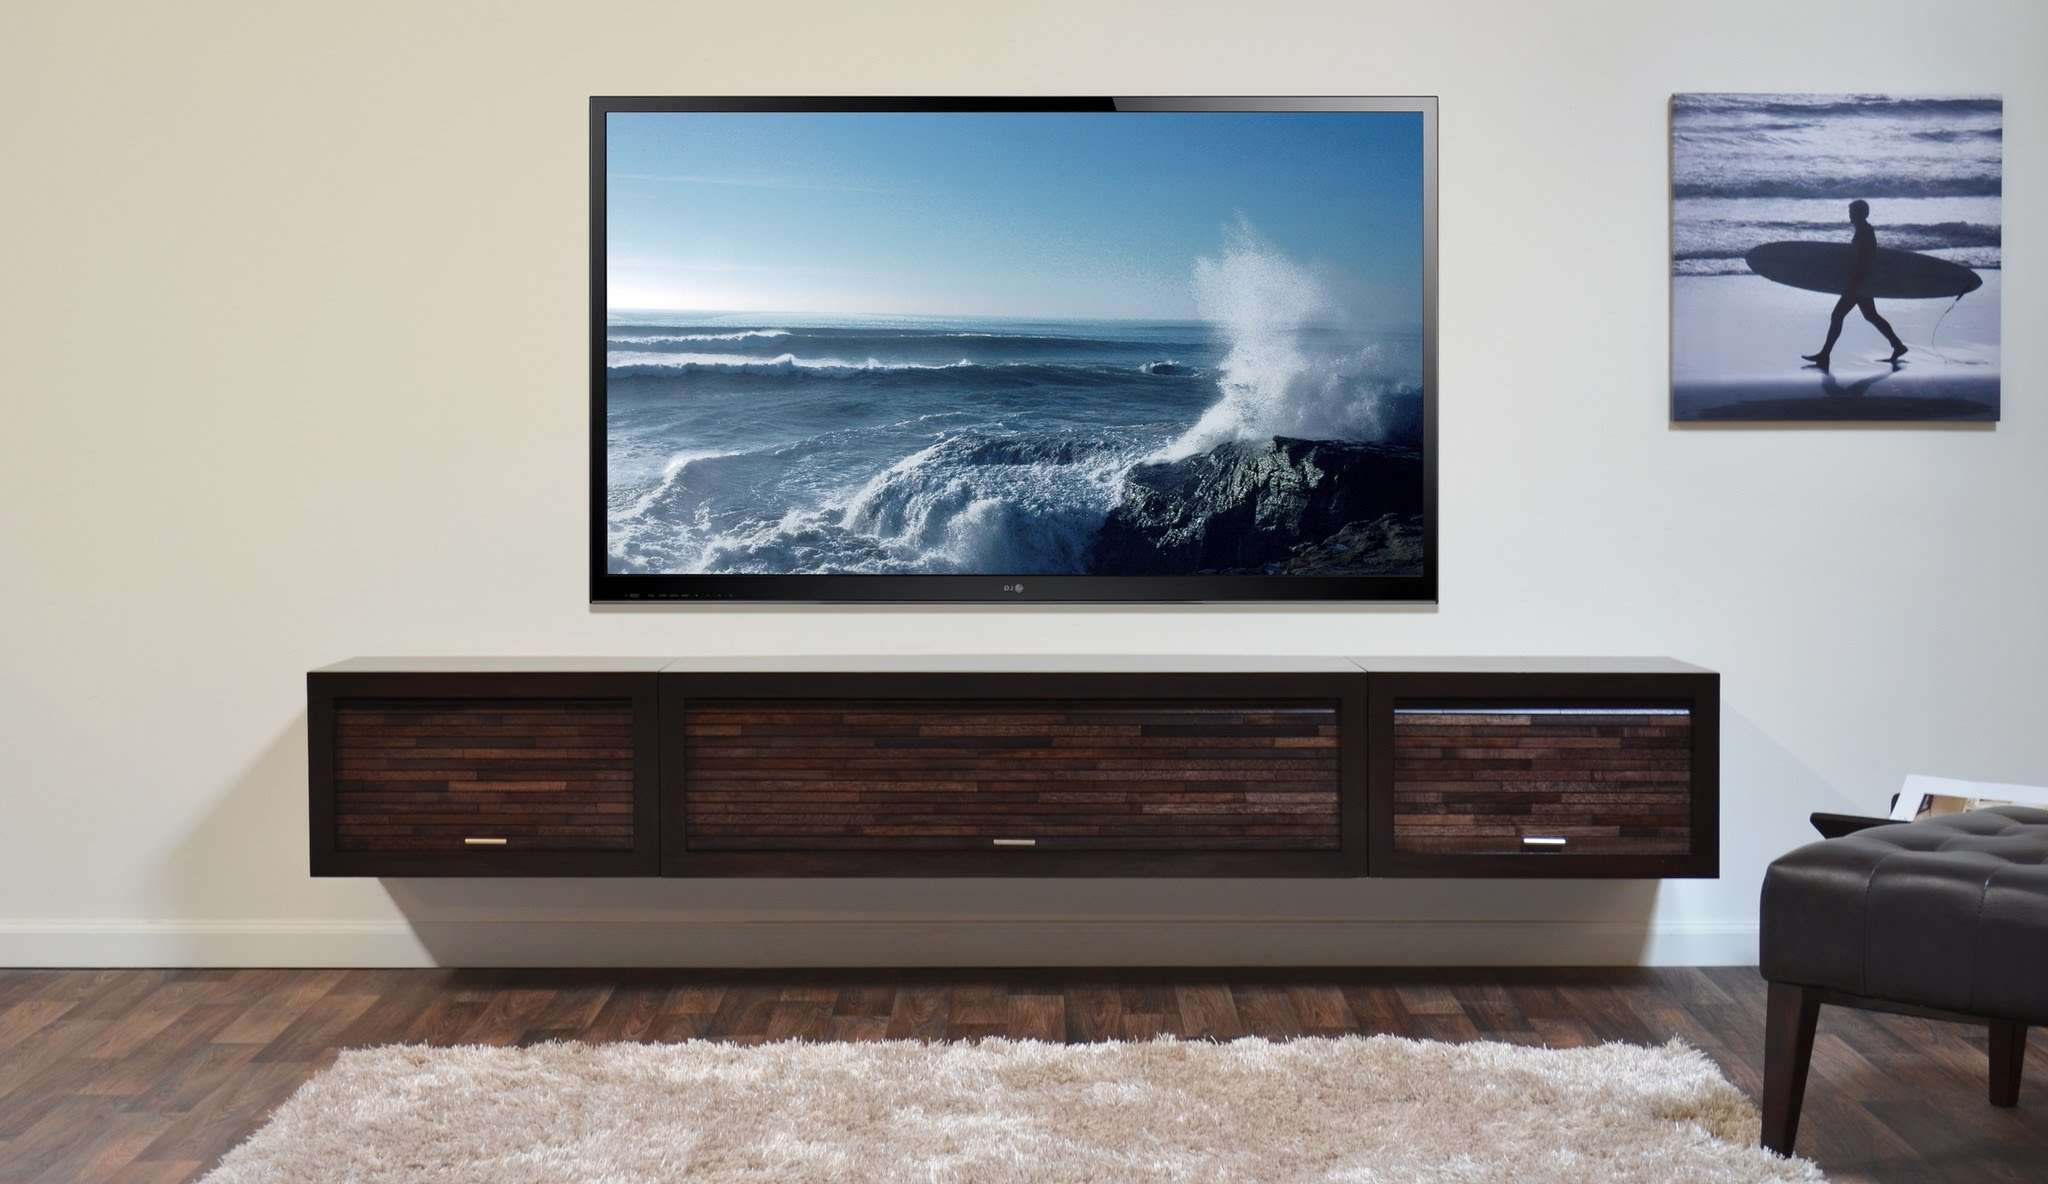 Diy Modern Tv Stand, Tv Stand Project On Pinterest – Youtube With Modern Tv Cabinets (View 12 of 20)